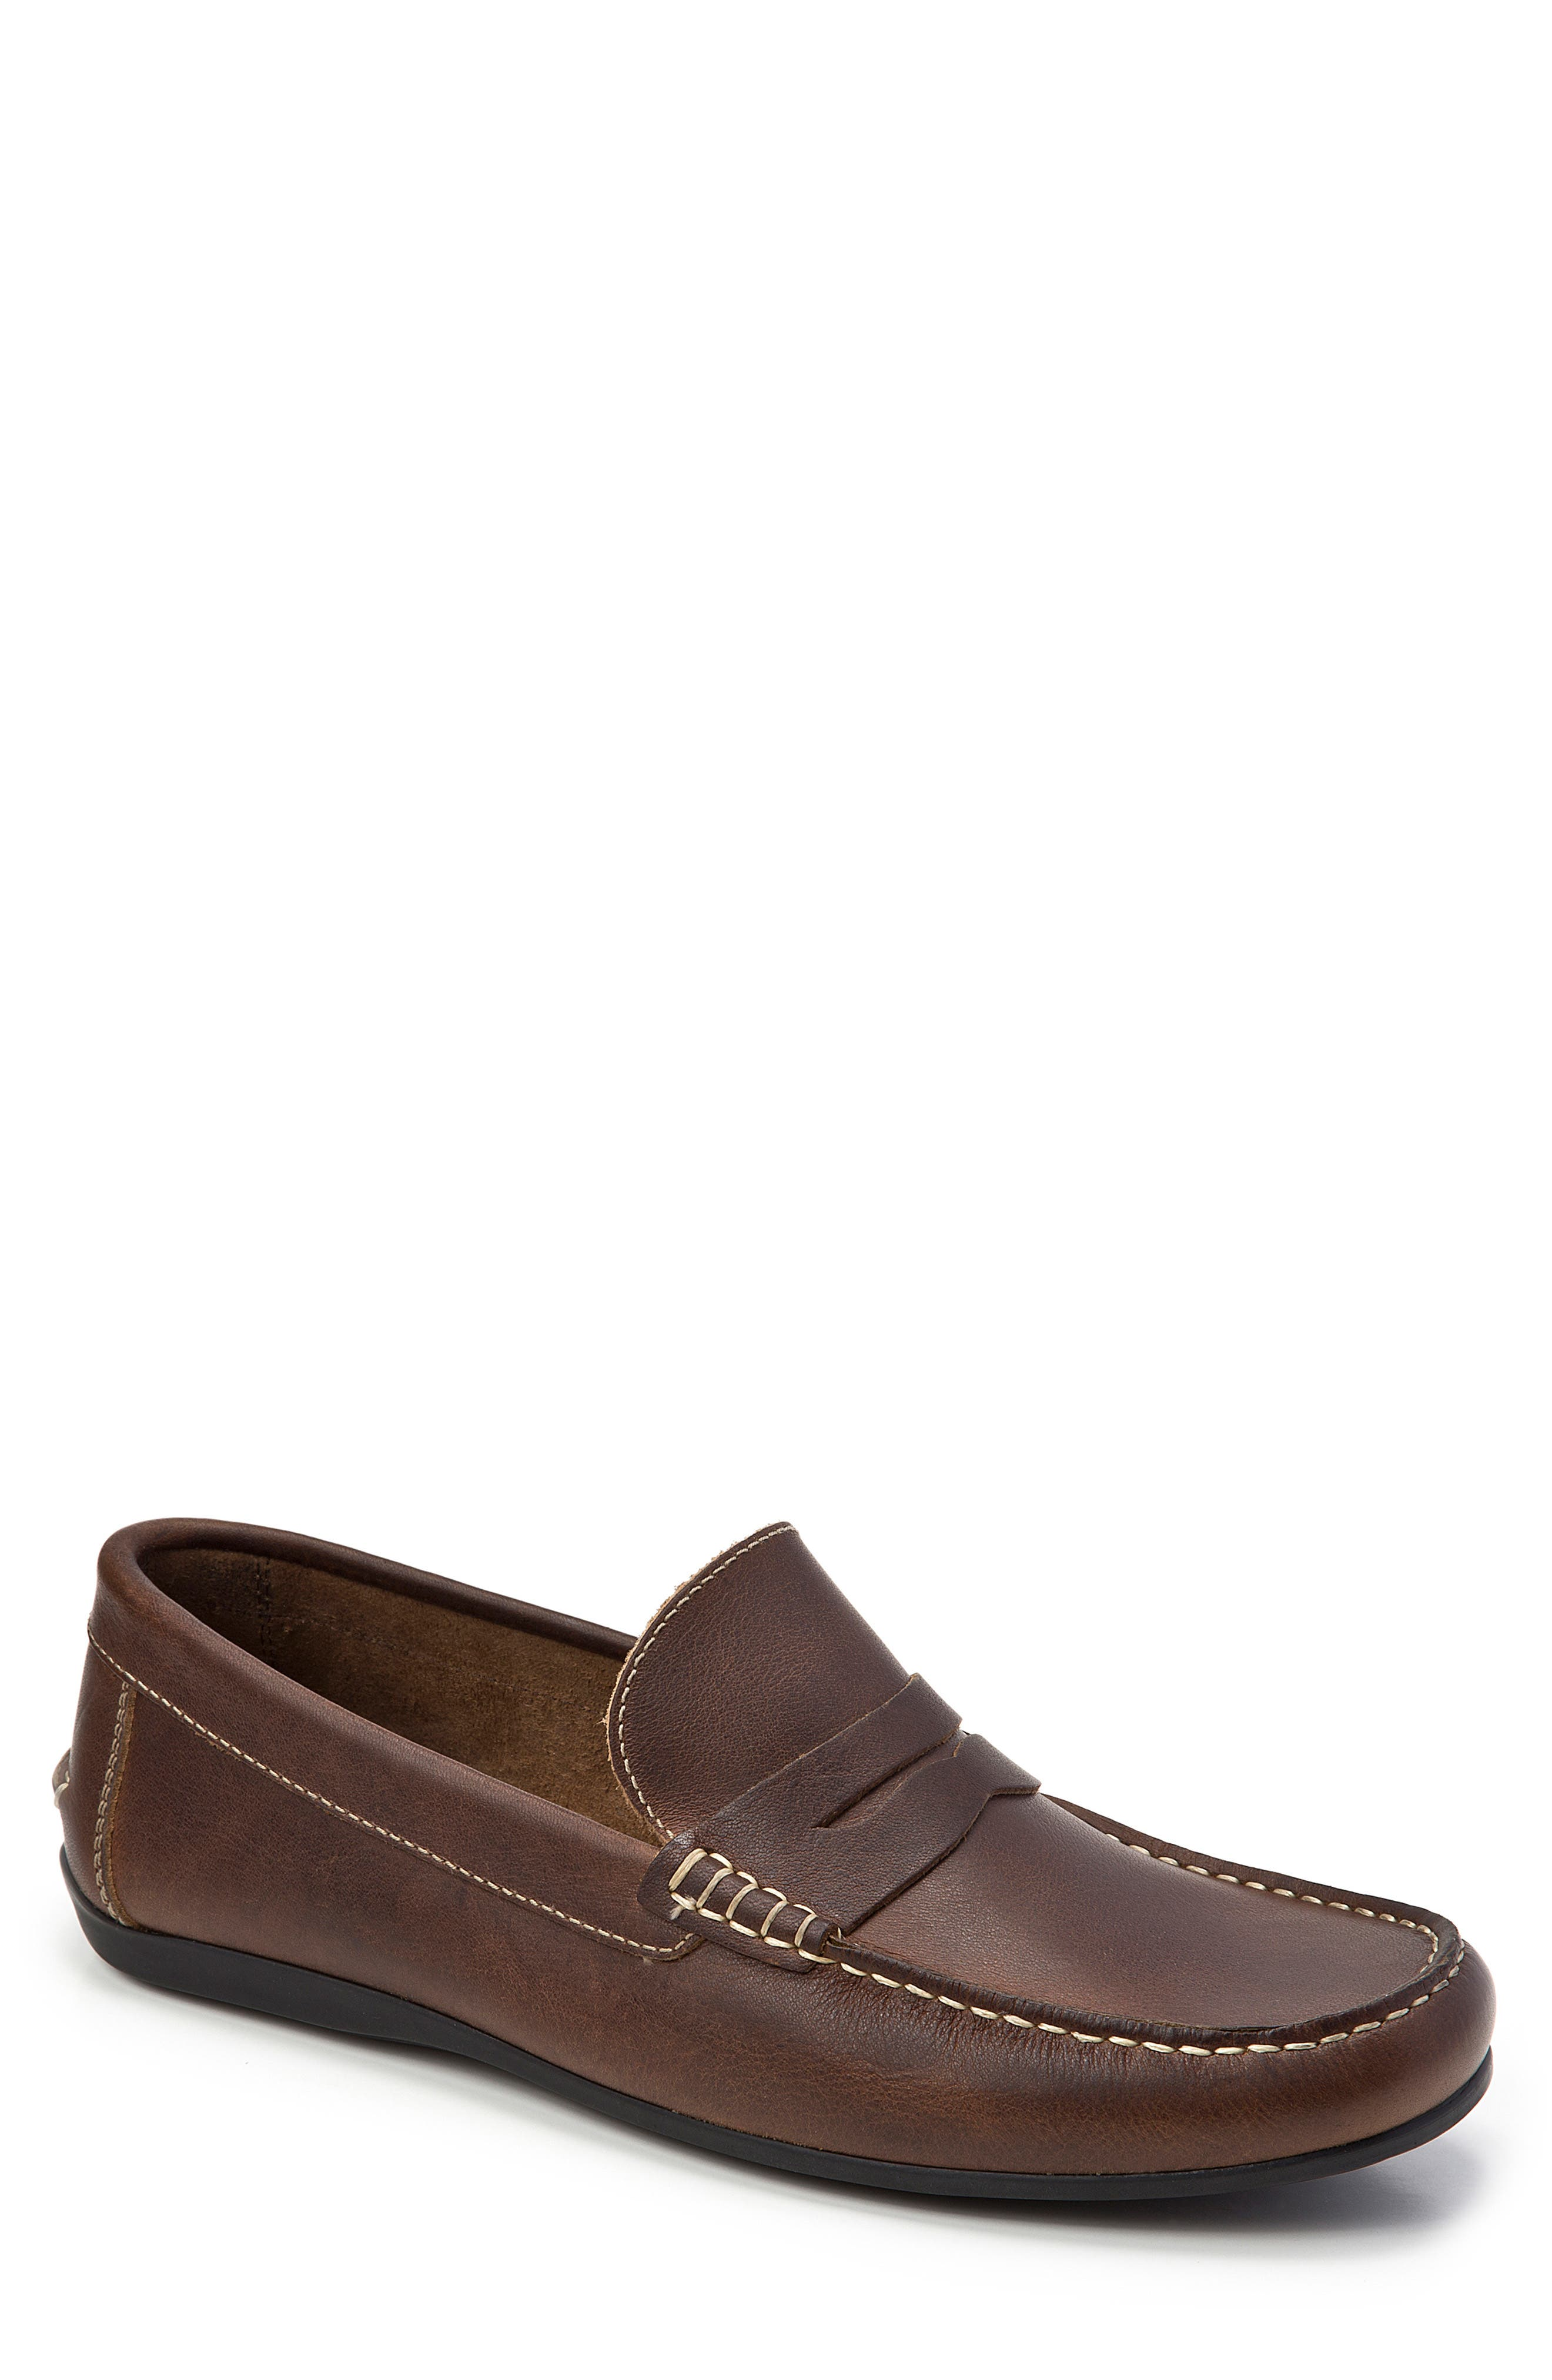 Sandro Moscoloni Niece Penny Loafer, Brown